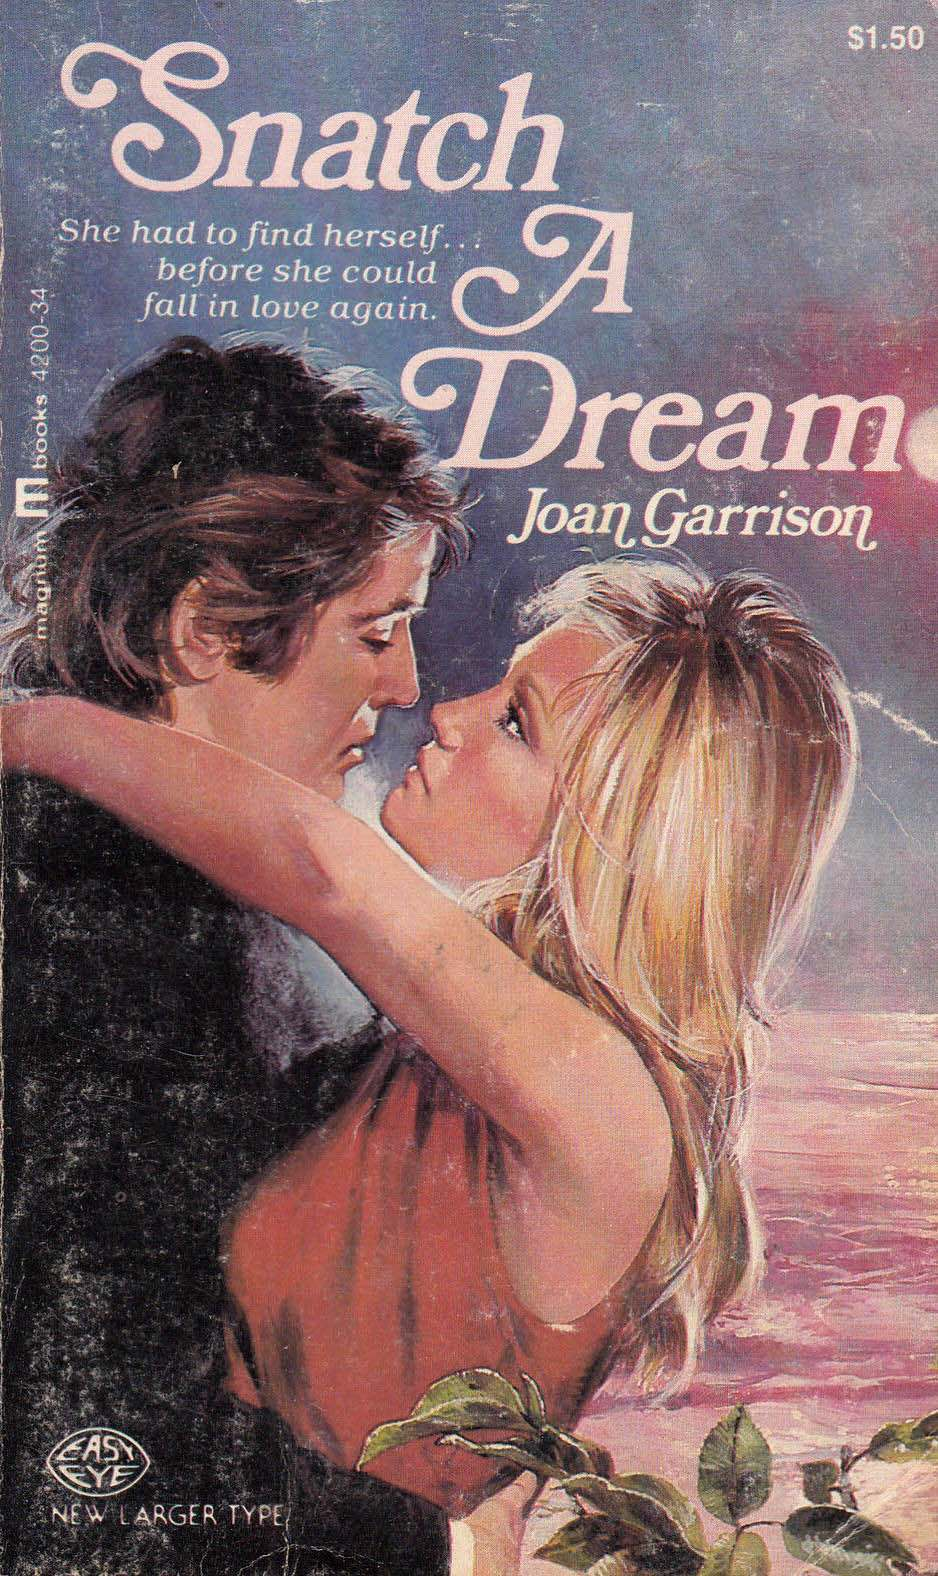 bodice-ripping passions romance novels